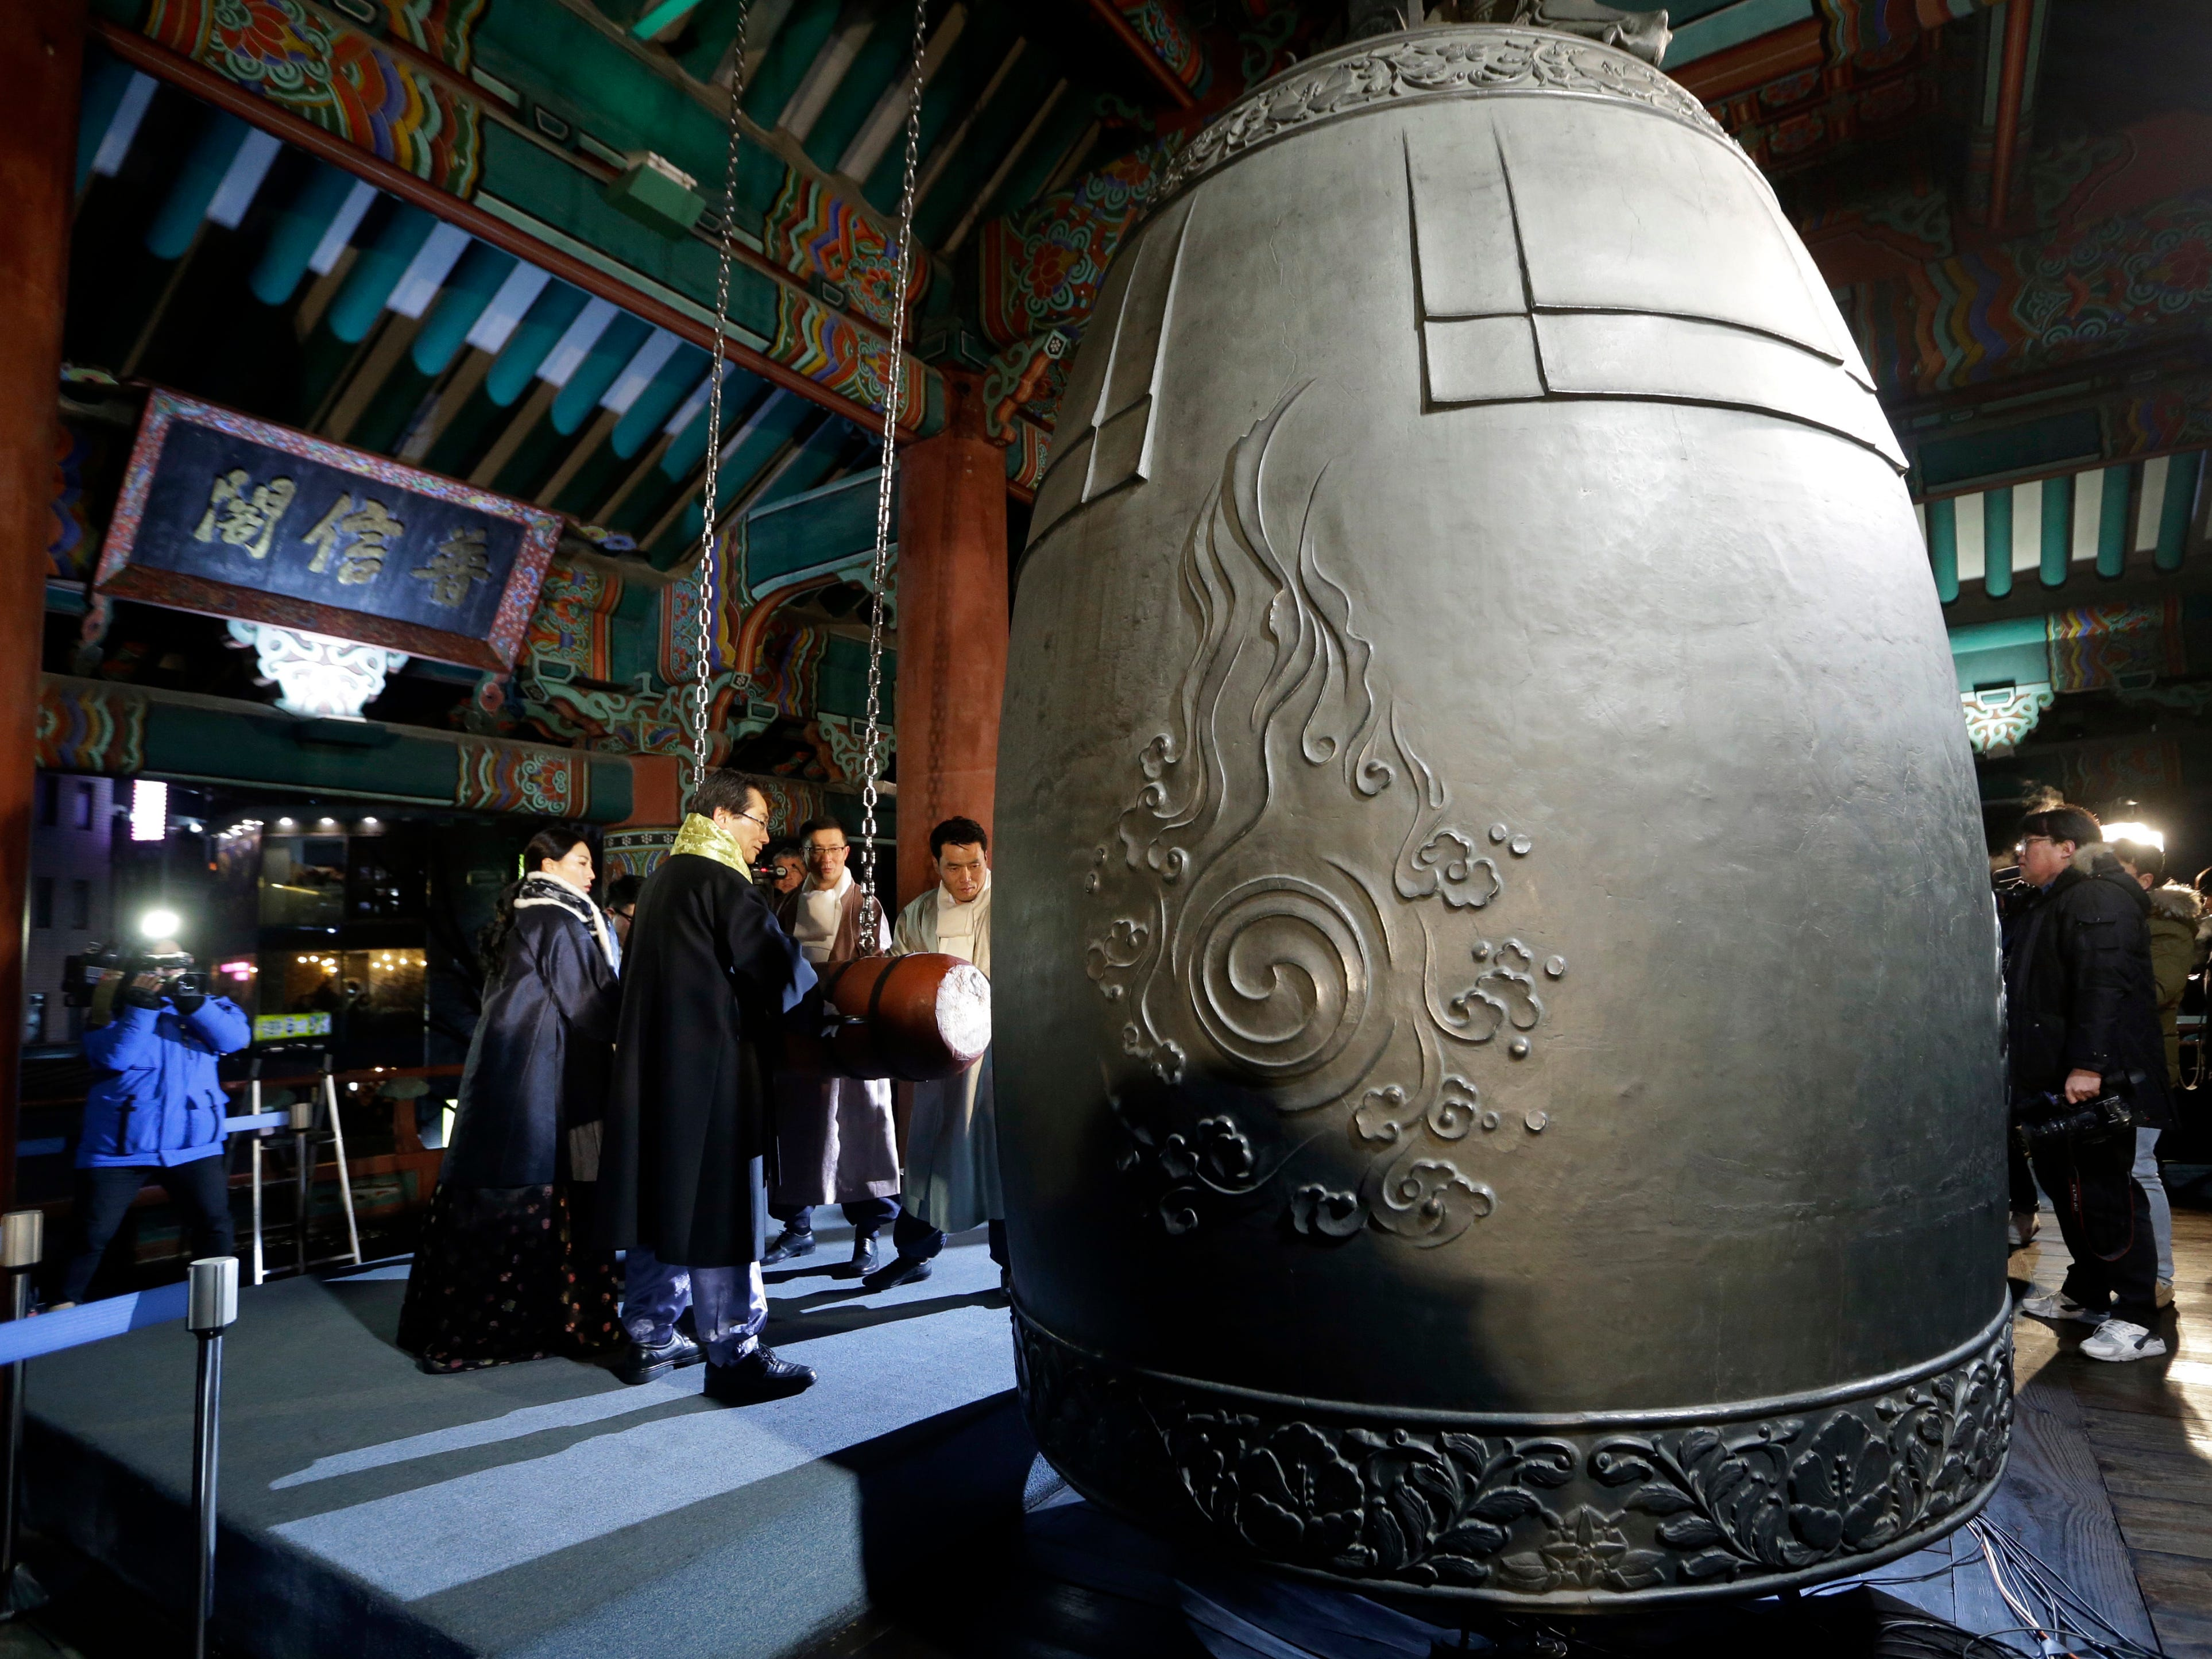 People strike a huge traditional bell during New Year's celebrations in Seoul, South Korea, on Jan. 1, 2019.